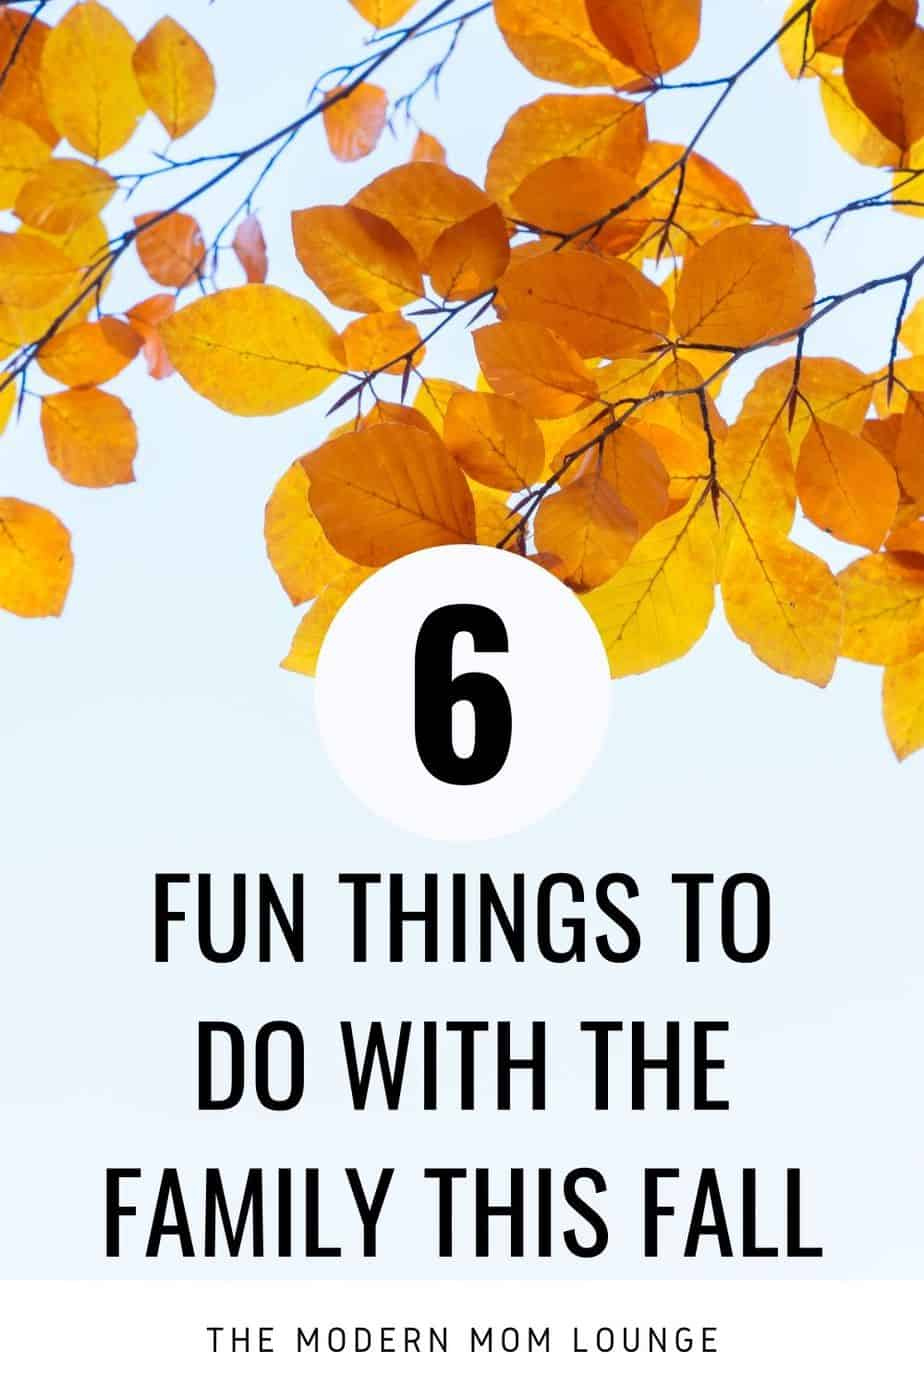 Fun things to do with the family this fall